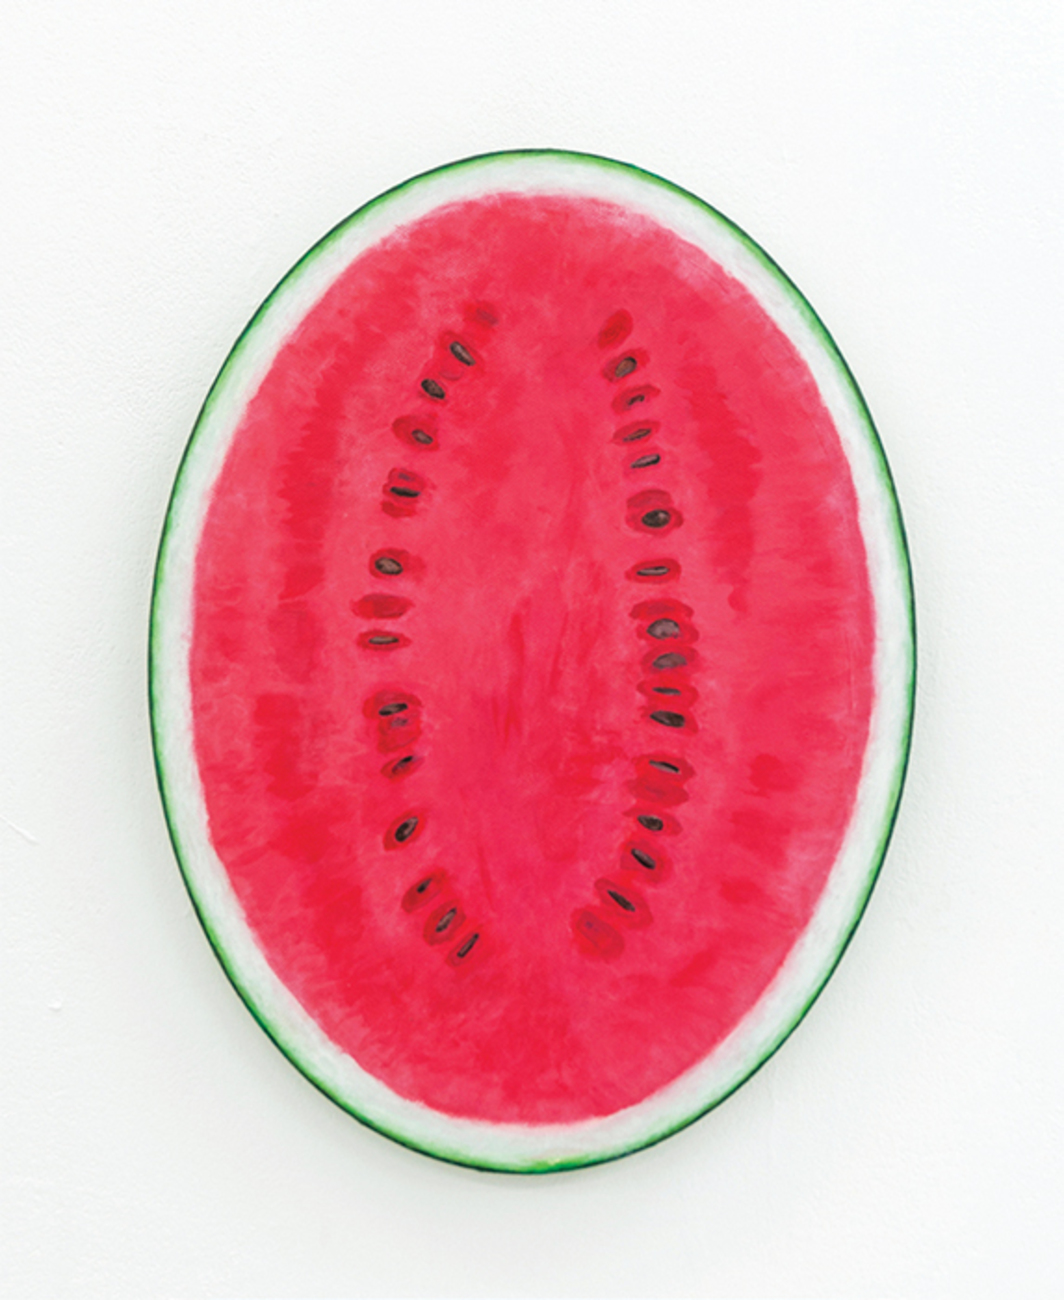 "Adam Cruces, Watermelon, 2016, acrylic on canvas, 15 3/4 × 11 3/4""."